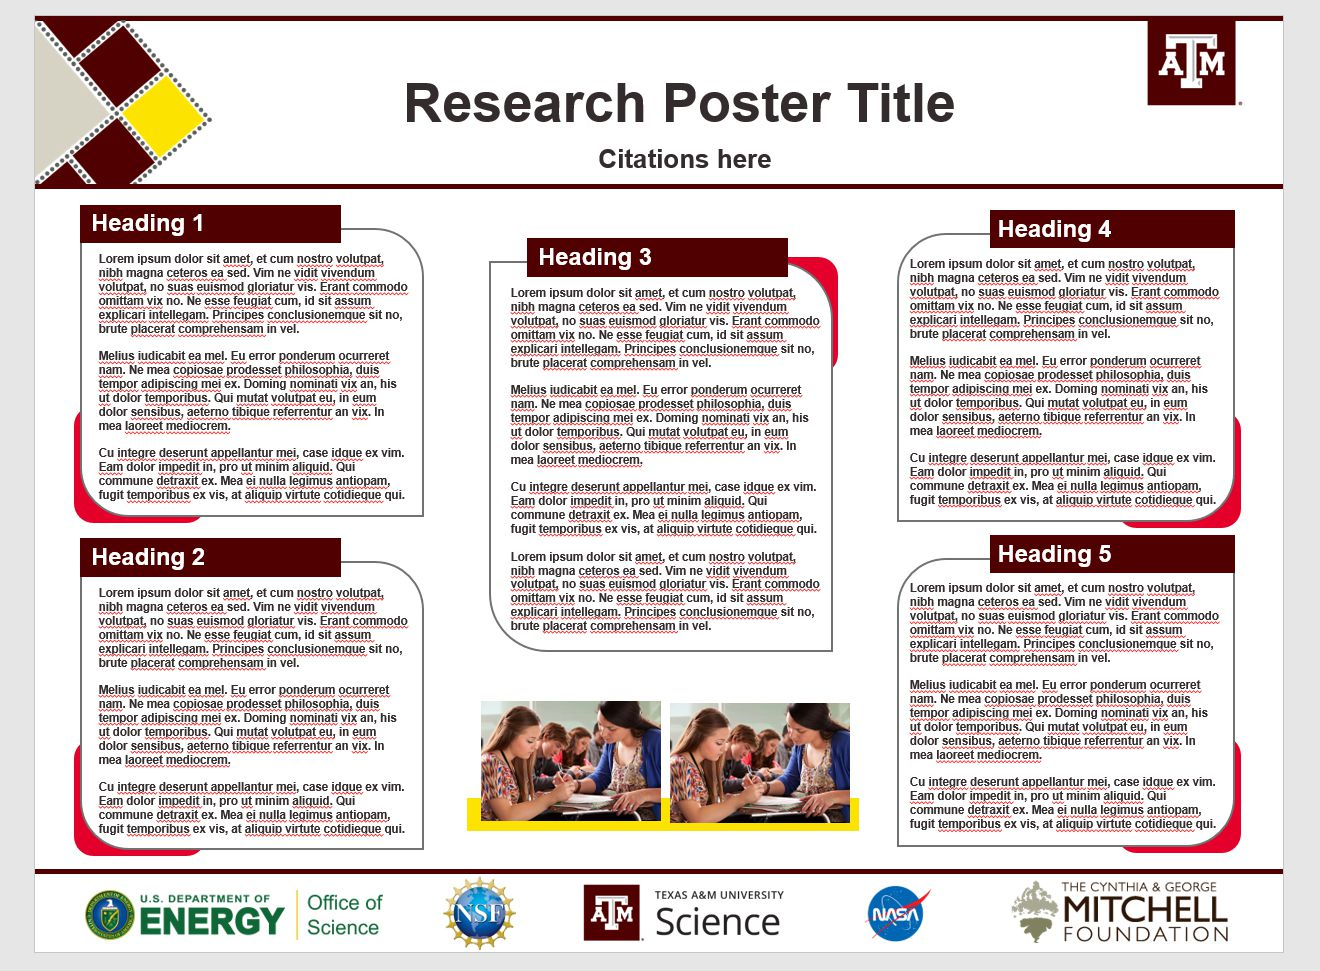 009 Frightening Research Poster Template Powerpoint Highest Clarity  Scientific PptFull